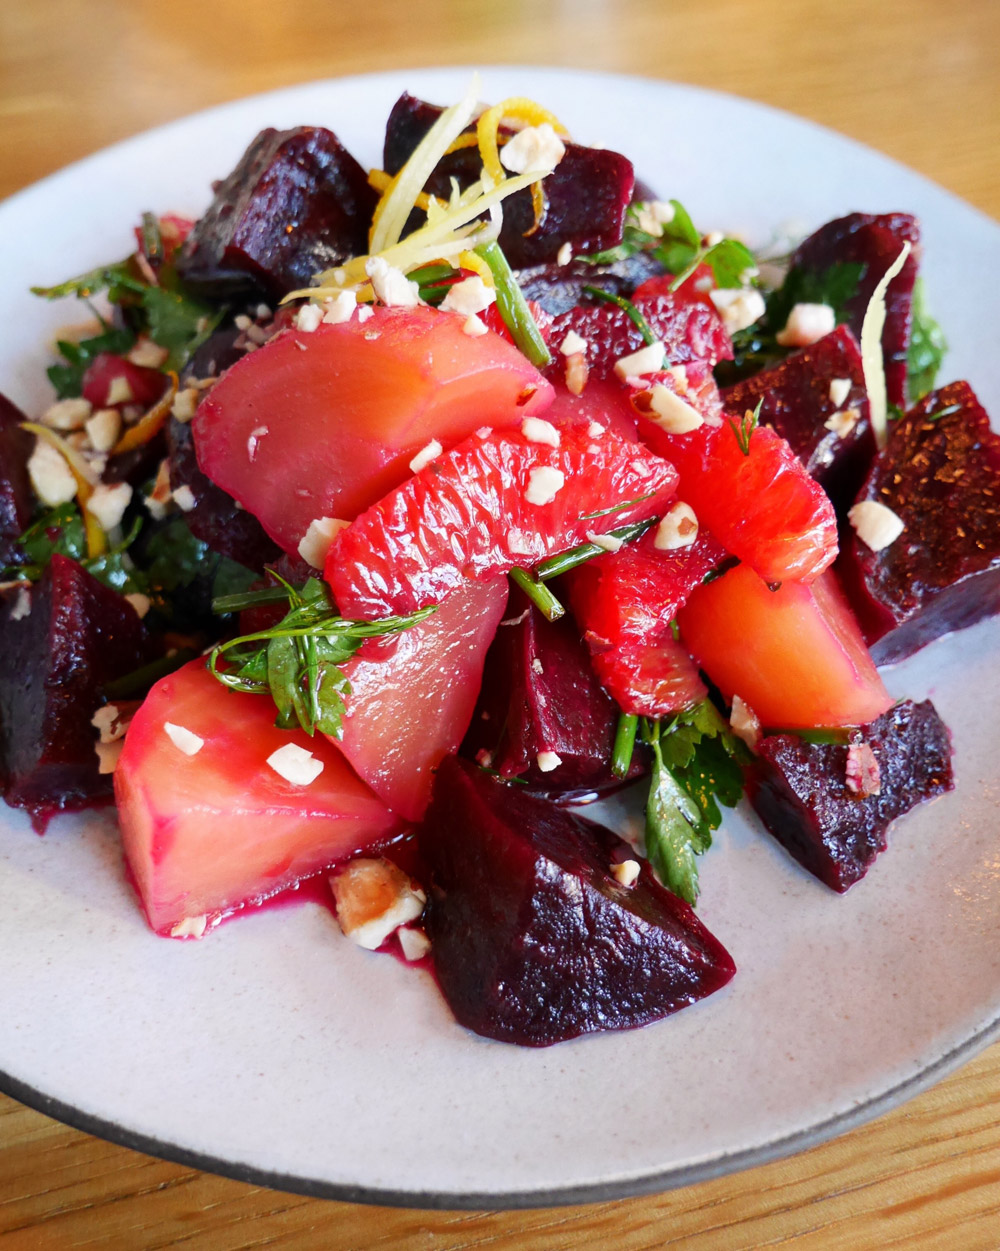 Estes, Dame Collective, Beet Salad